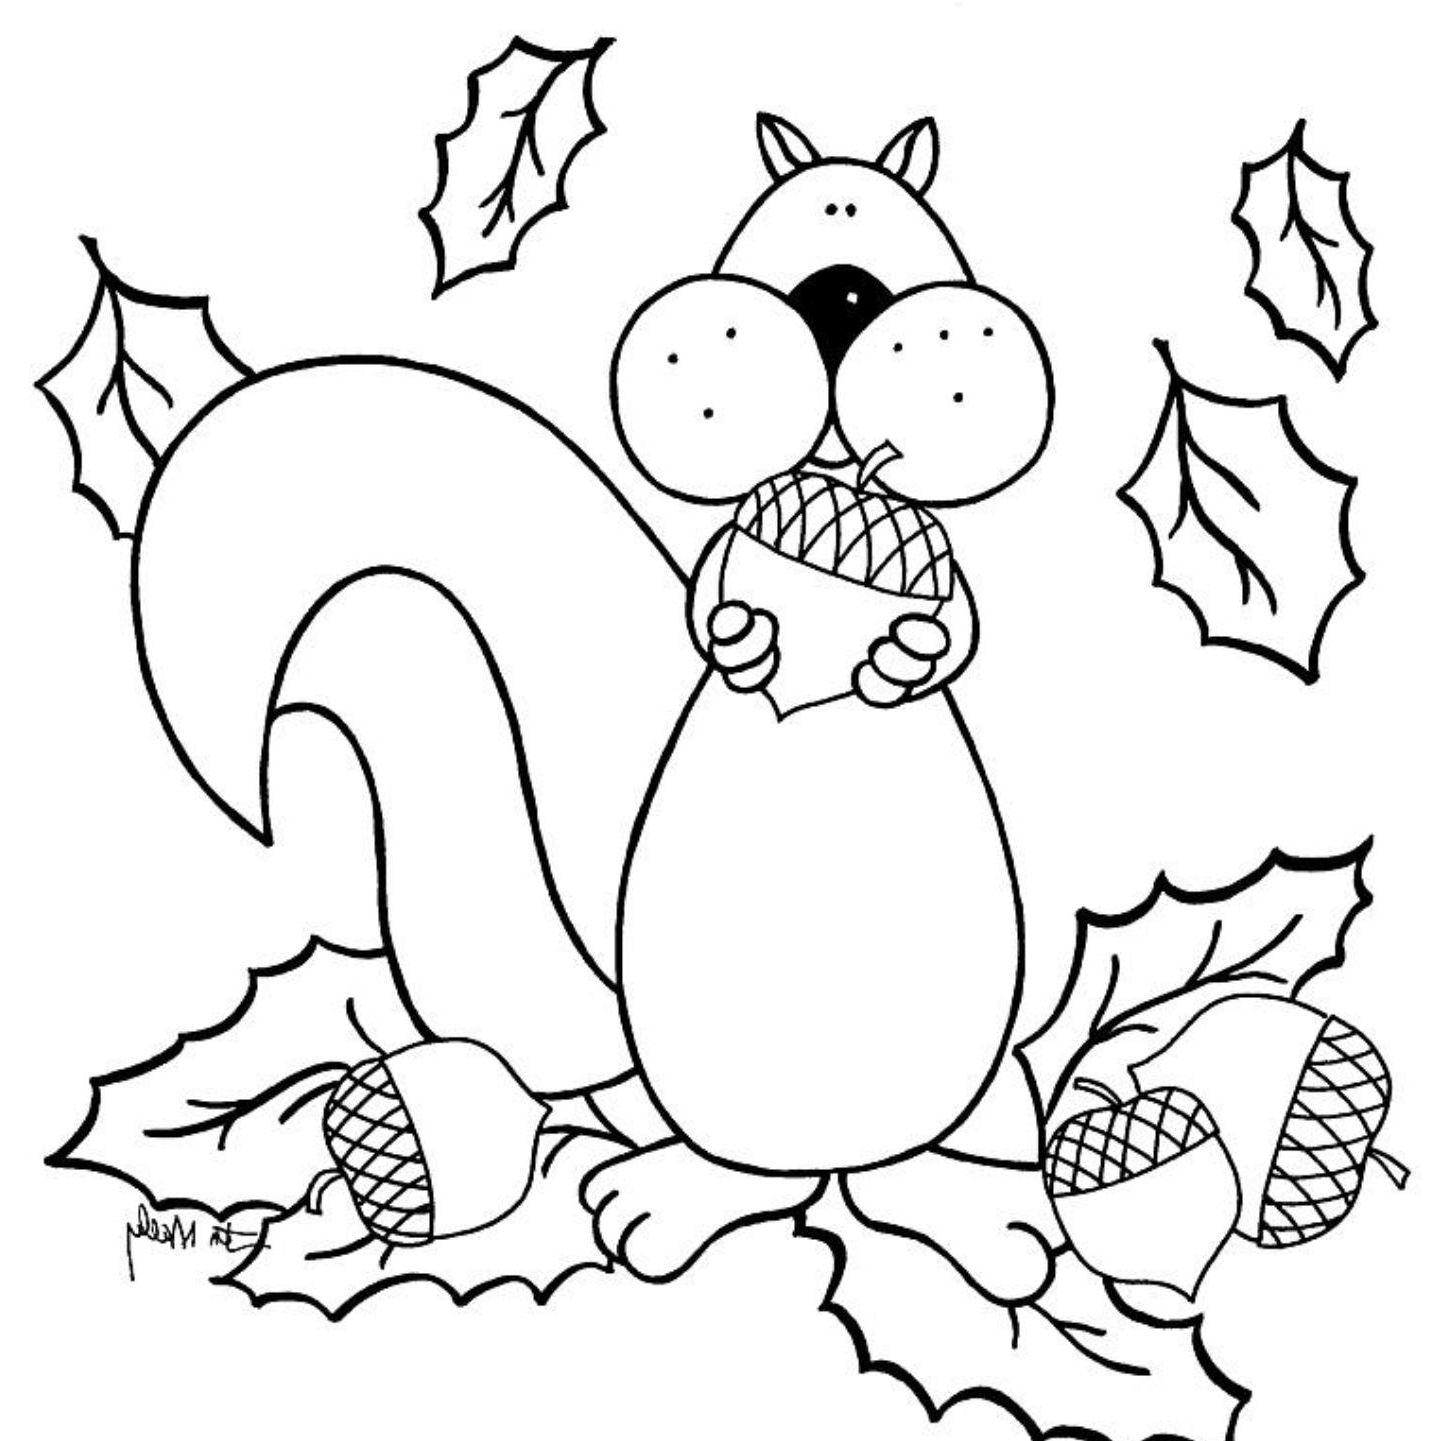 Preschool Fall Coloring Pages | Squirrel coloring page ...